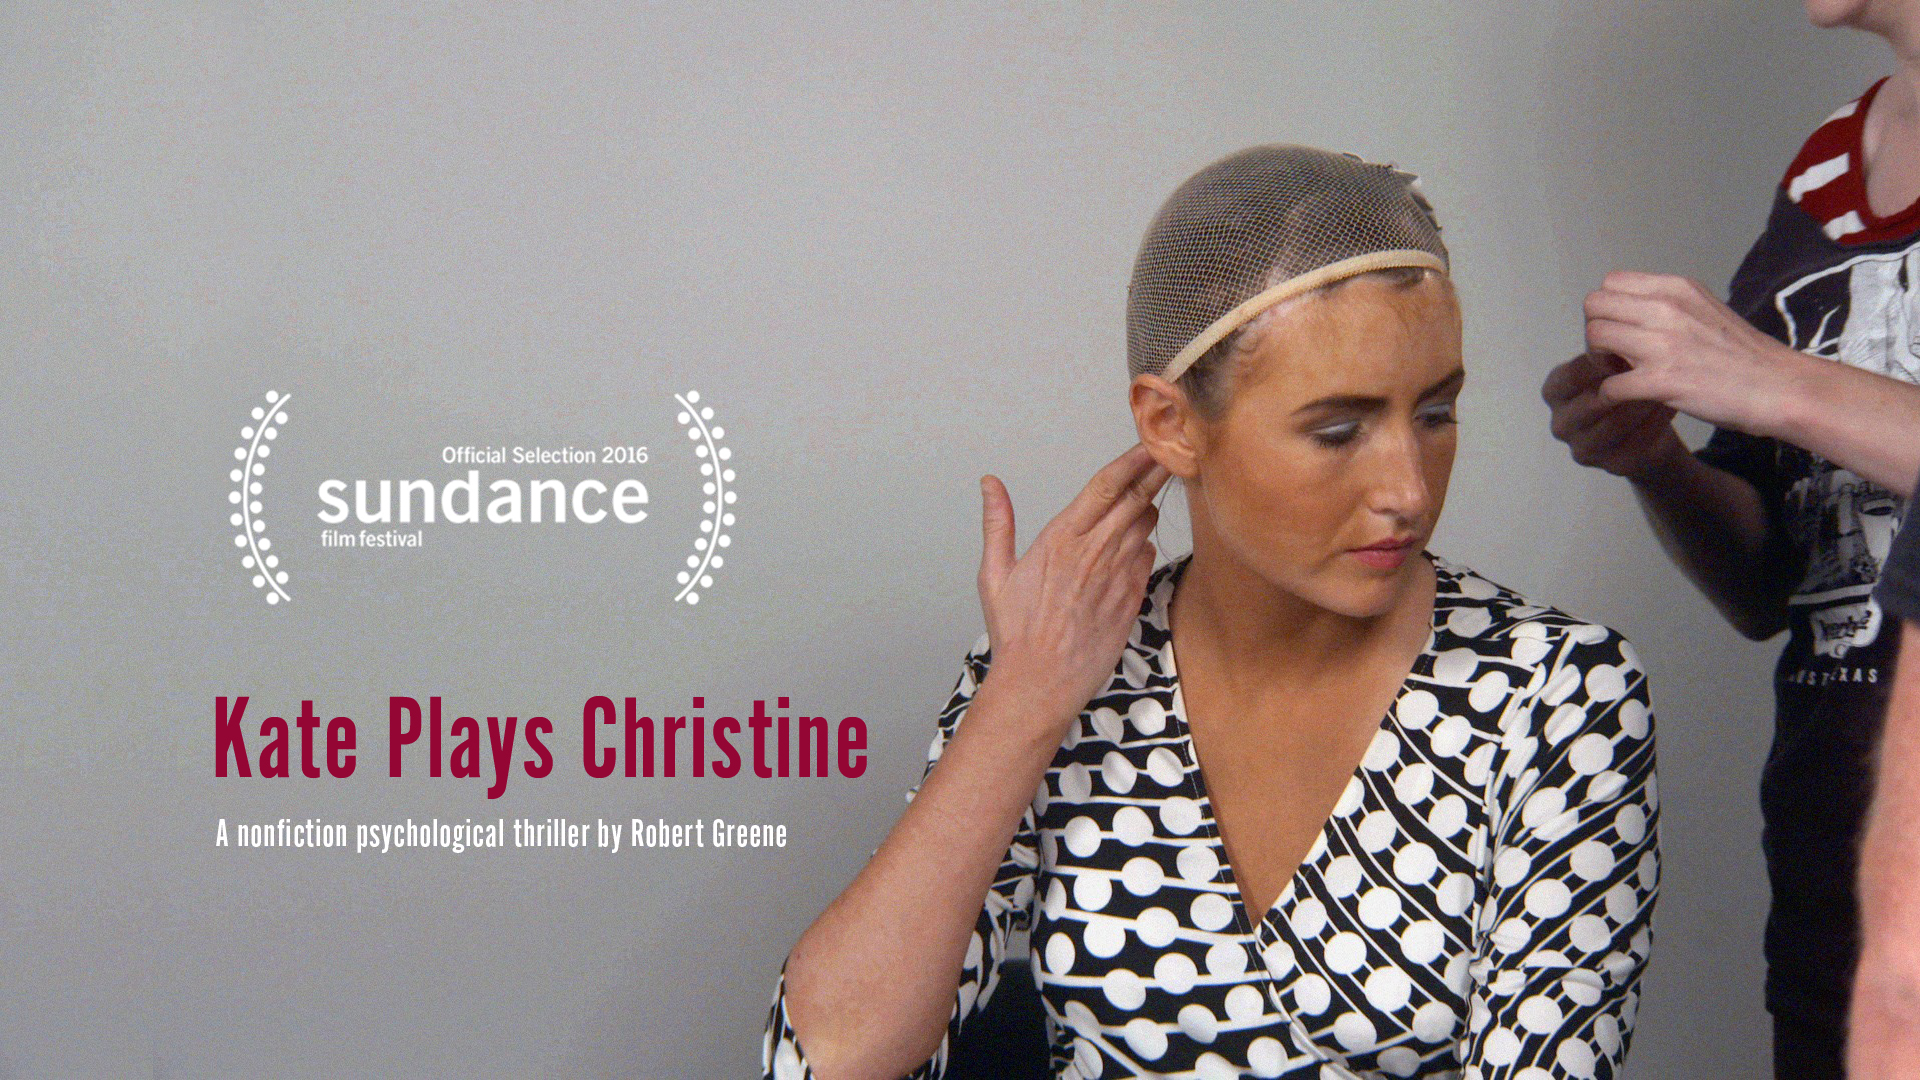 KATE_PLAYS_CHRISTINE_1920x1080_BIG_FEATURED